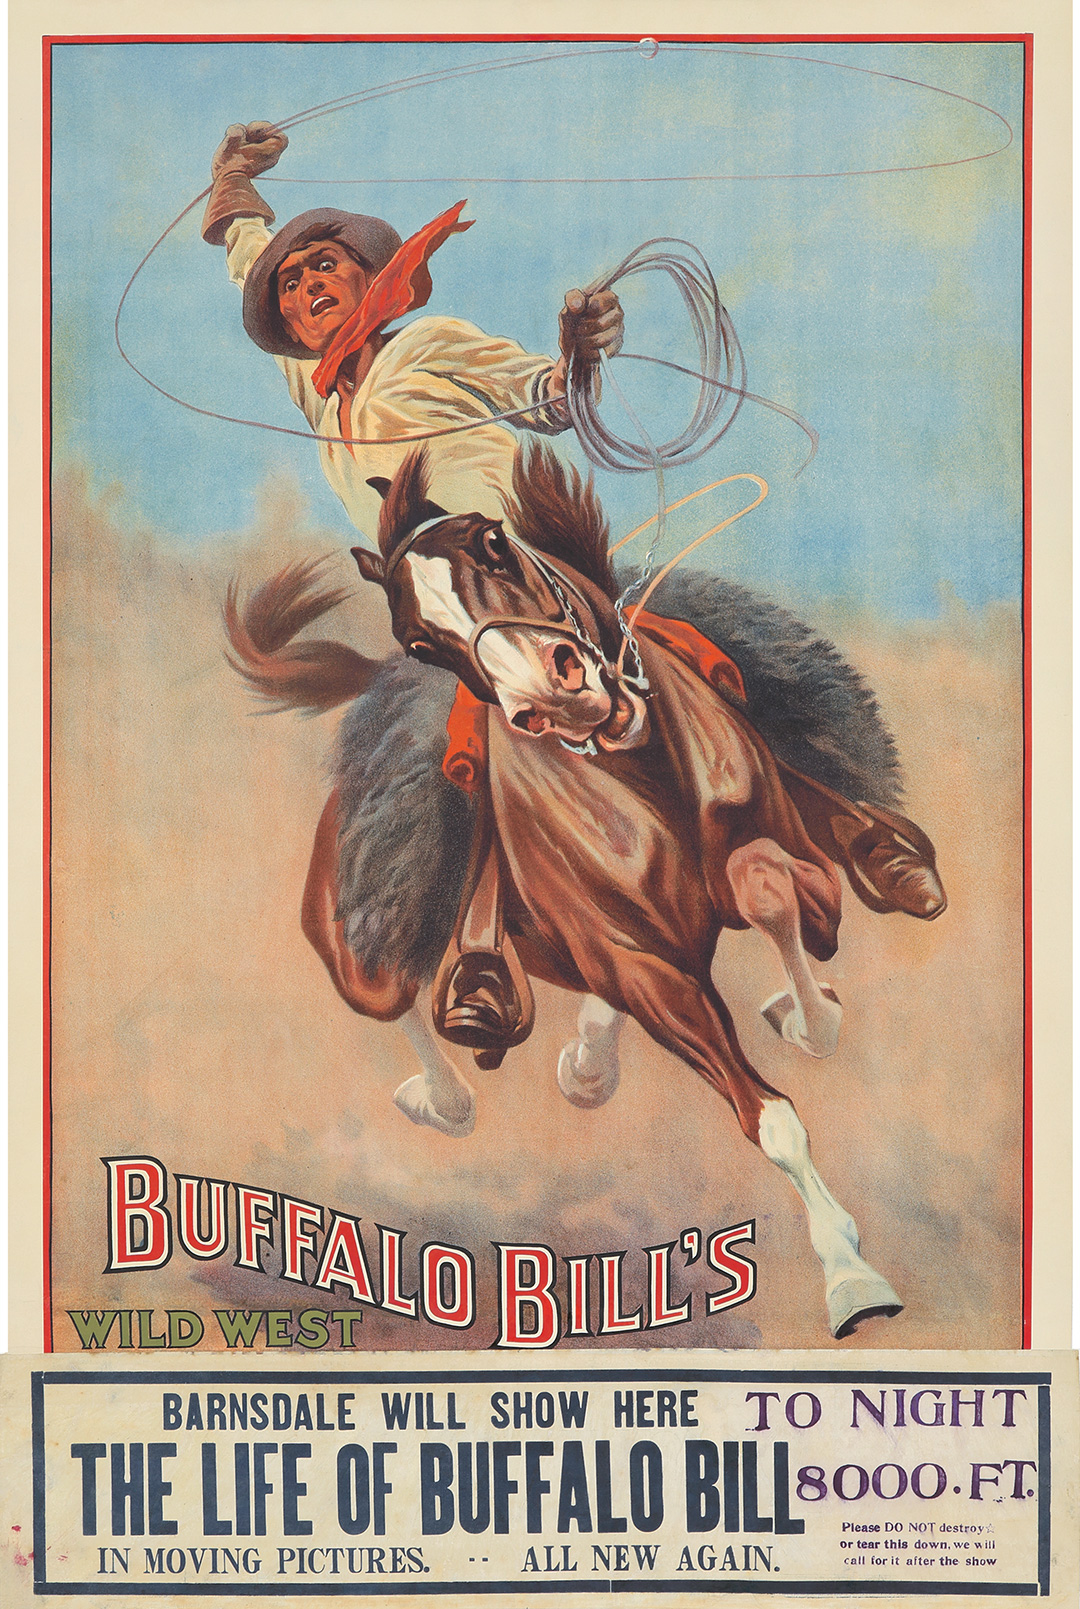 174. Buffalo Bill's Wild West.  ca. 1912.